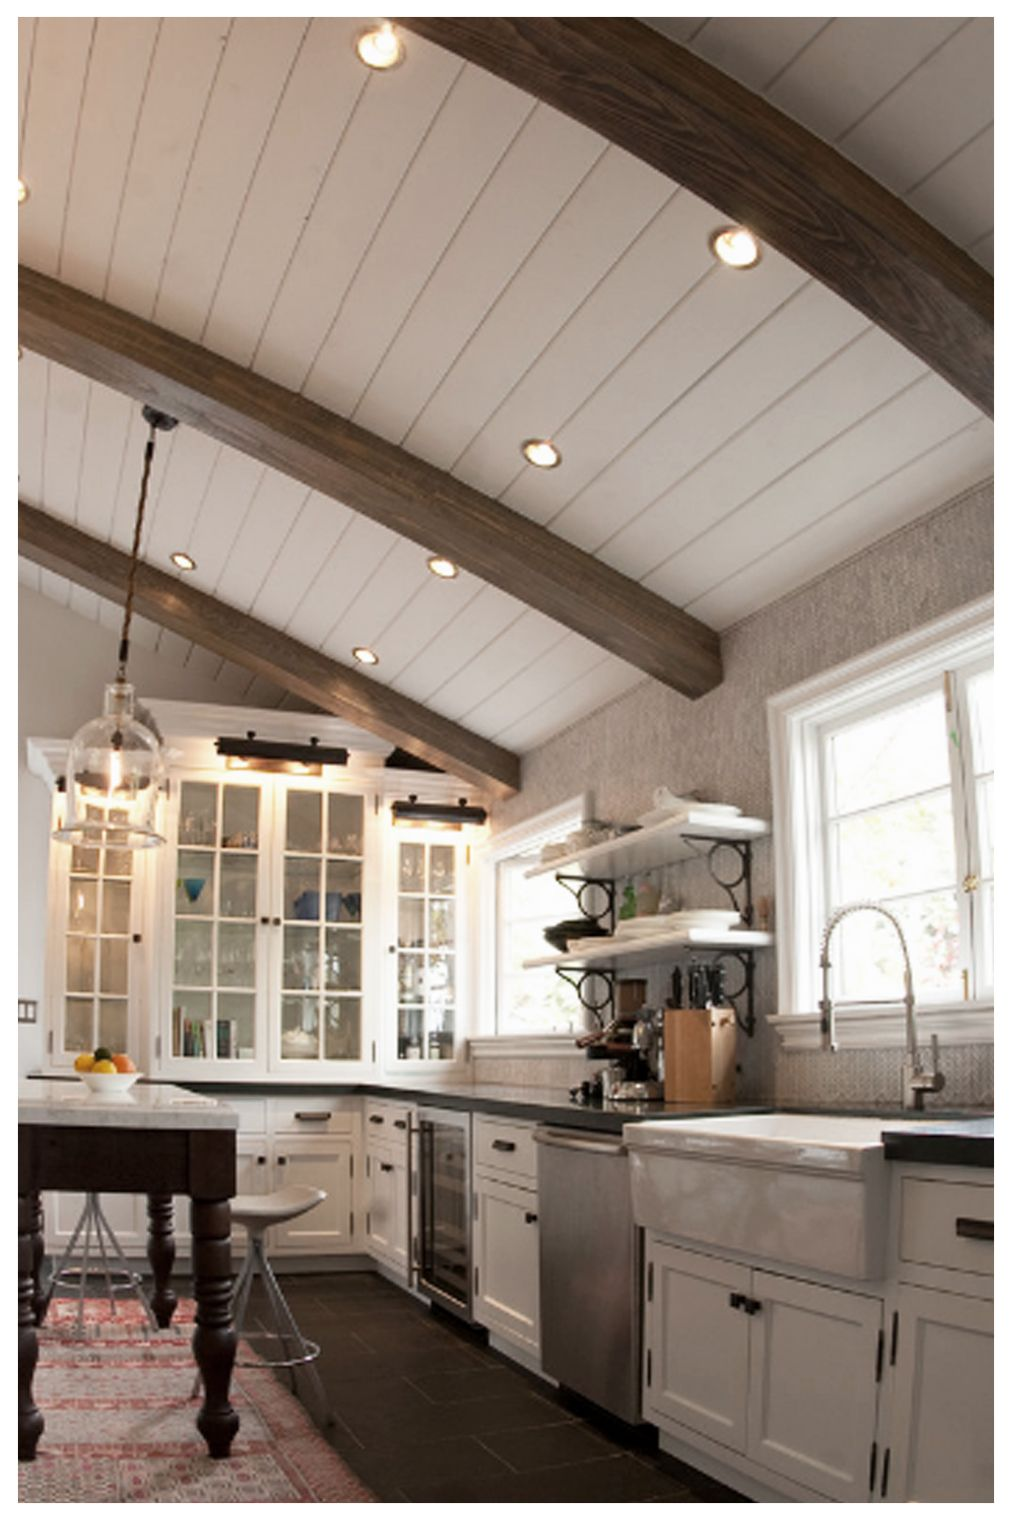 Live Beautifully Dallas Project The Kitchen Home Kitchens Kitchen Layout Kitchen Ceiling